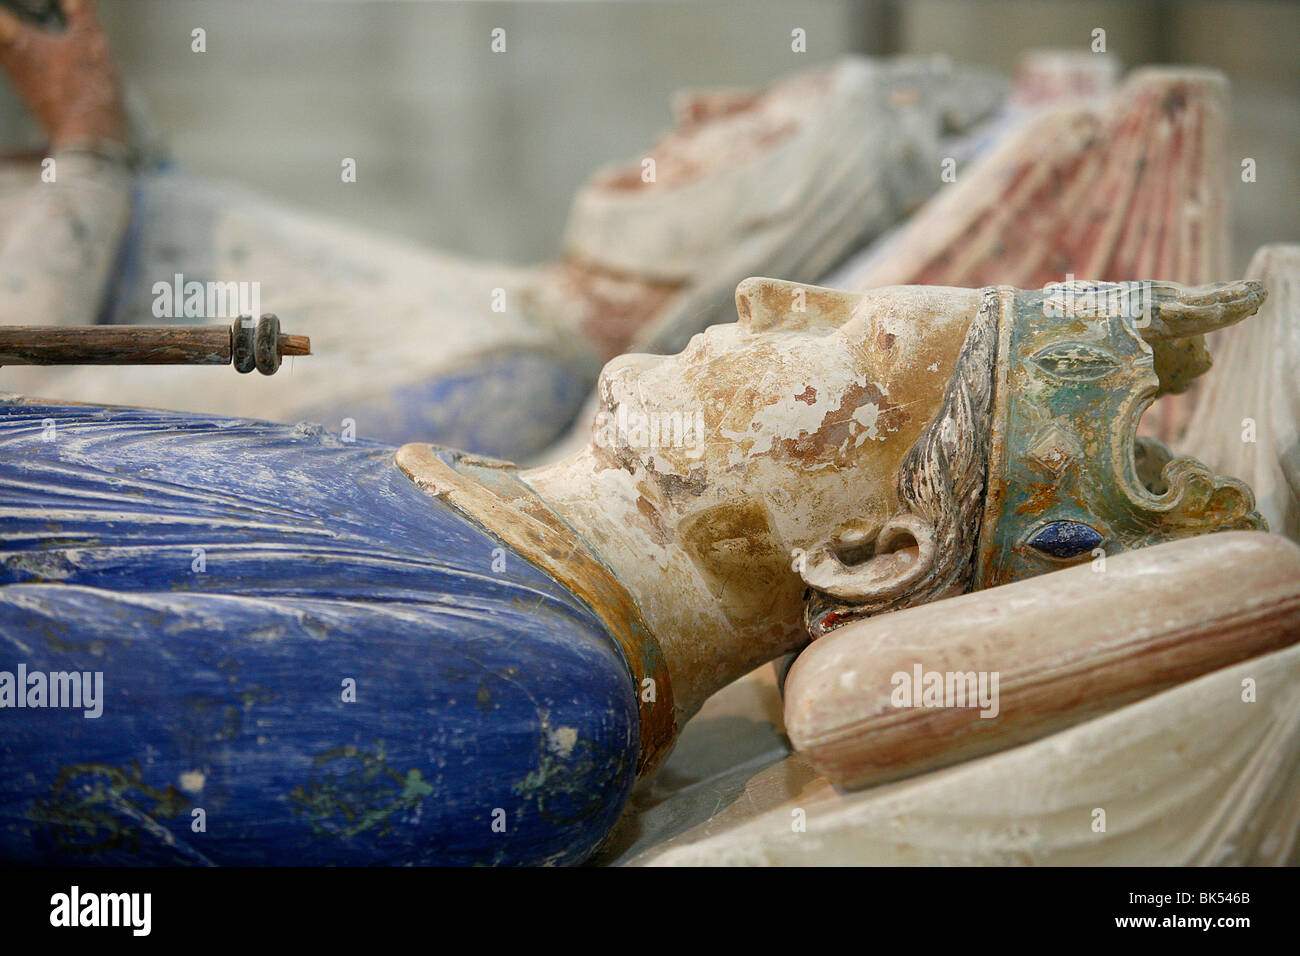 Tomb of Henry II, king of England from 1154 until 1189, Fontevraud Abbey, Fontevraud, Maine-et-Loire, France, Europe - Stock Image